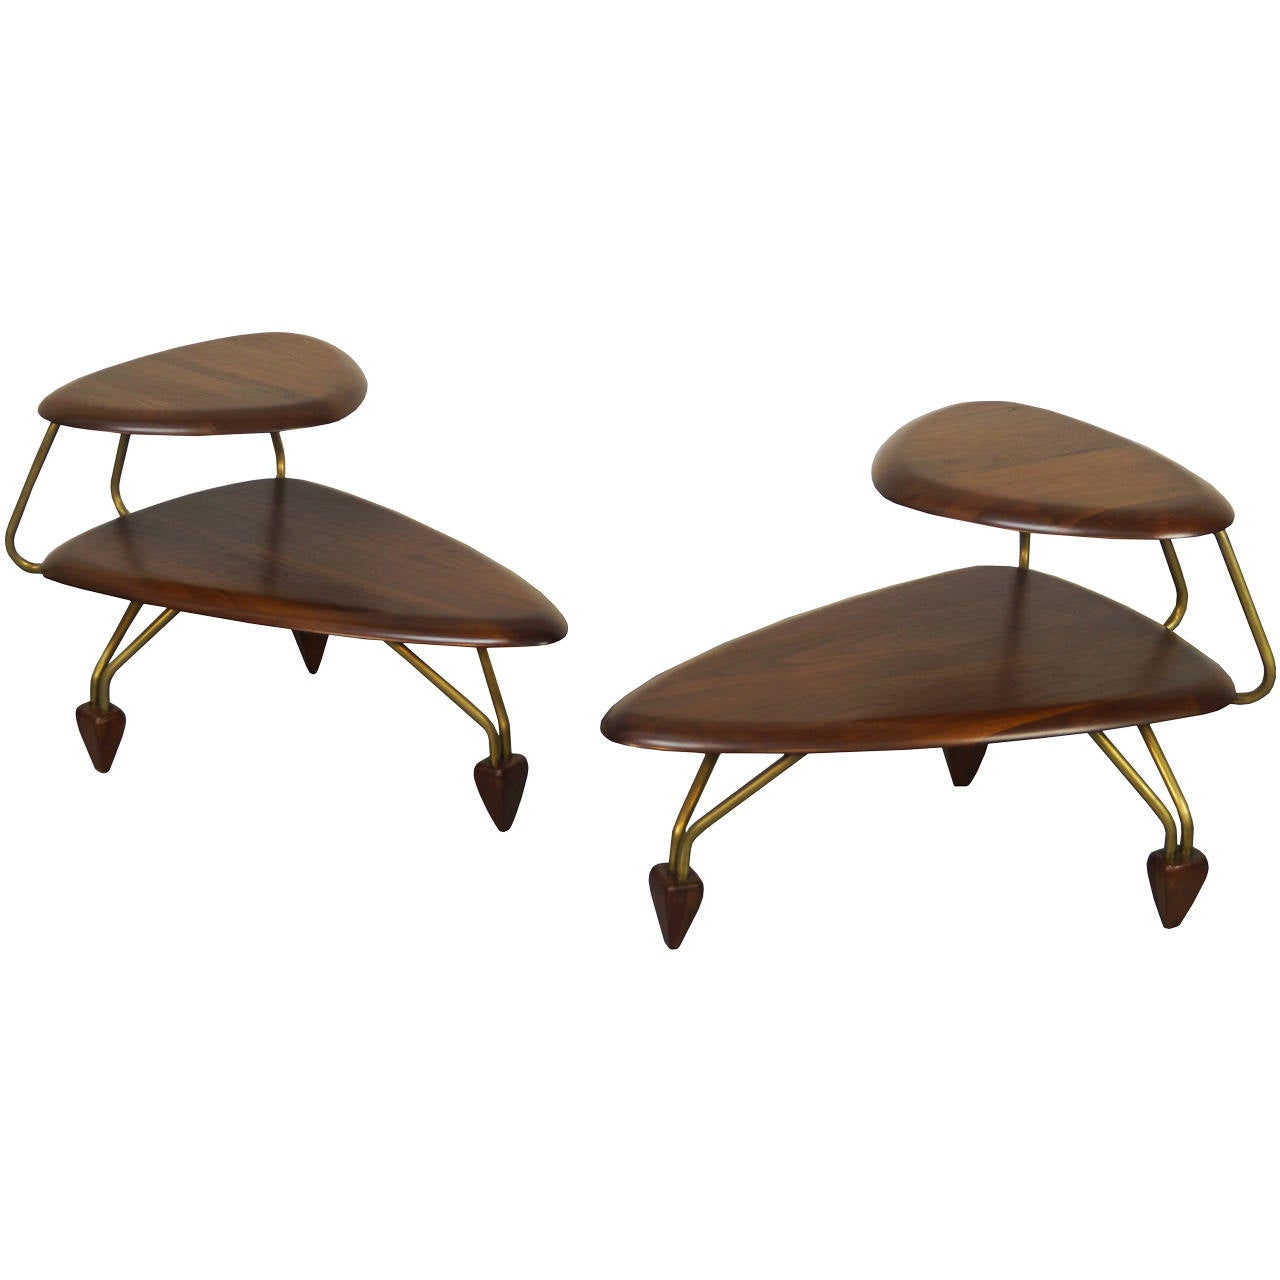 Surfboard Tables For Sale Vintage Surfboard Side Tables By John Keal At 1stdibs